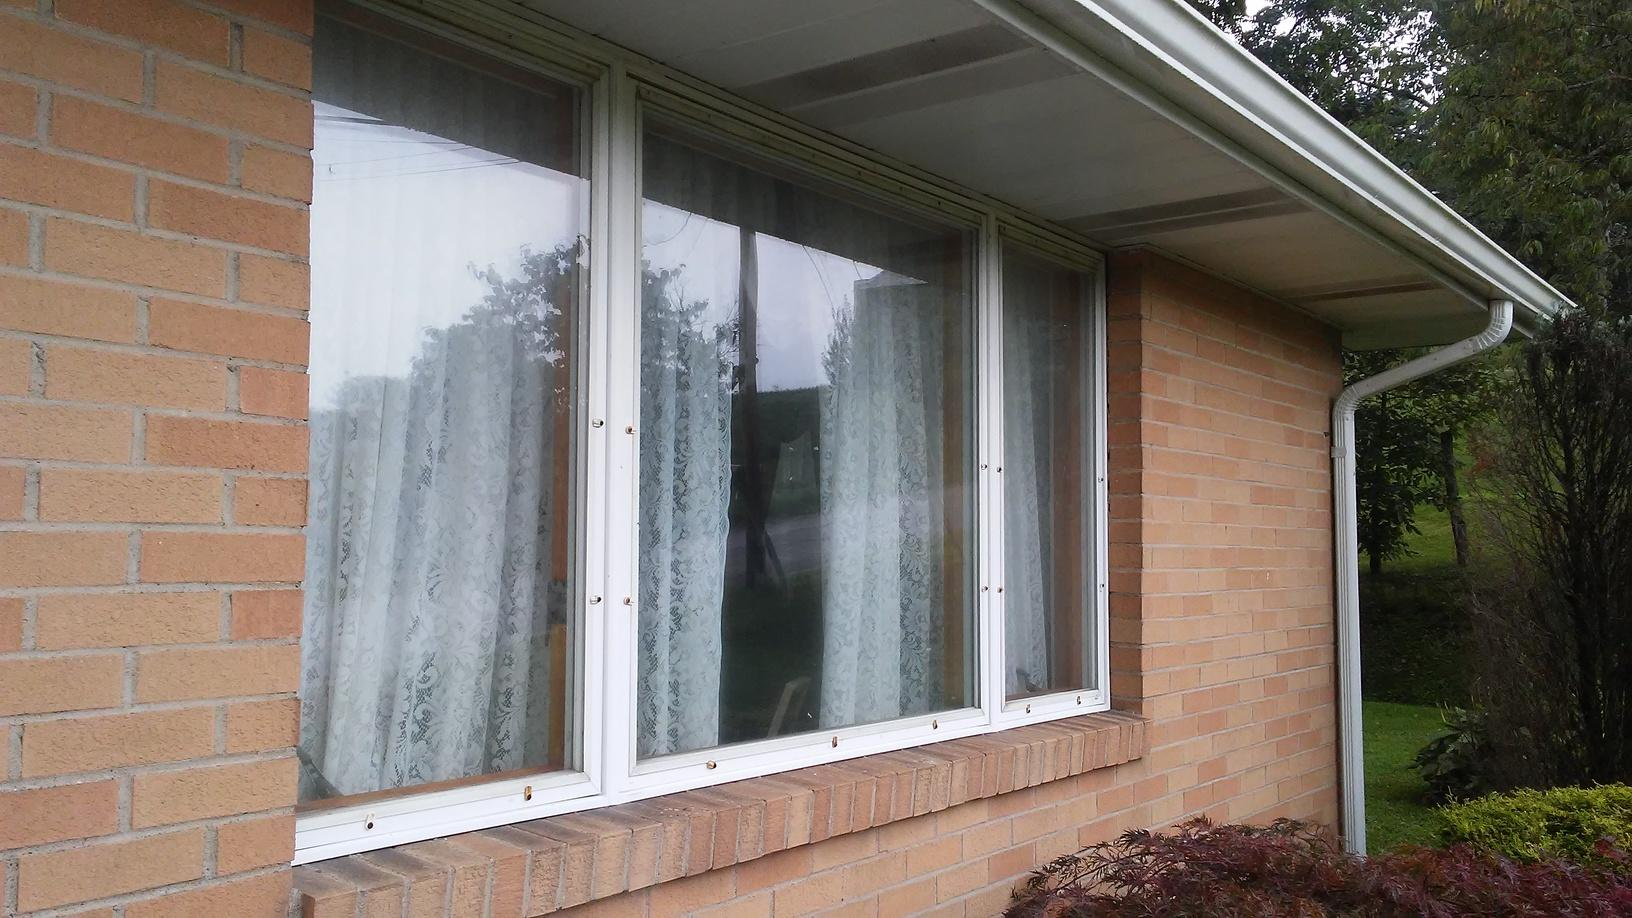 Old Aluminum Window converted into Beautiful Bay for Greensburg, PA clients! - Before Photo